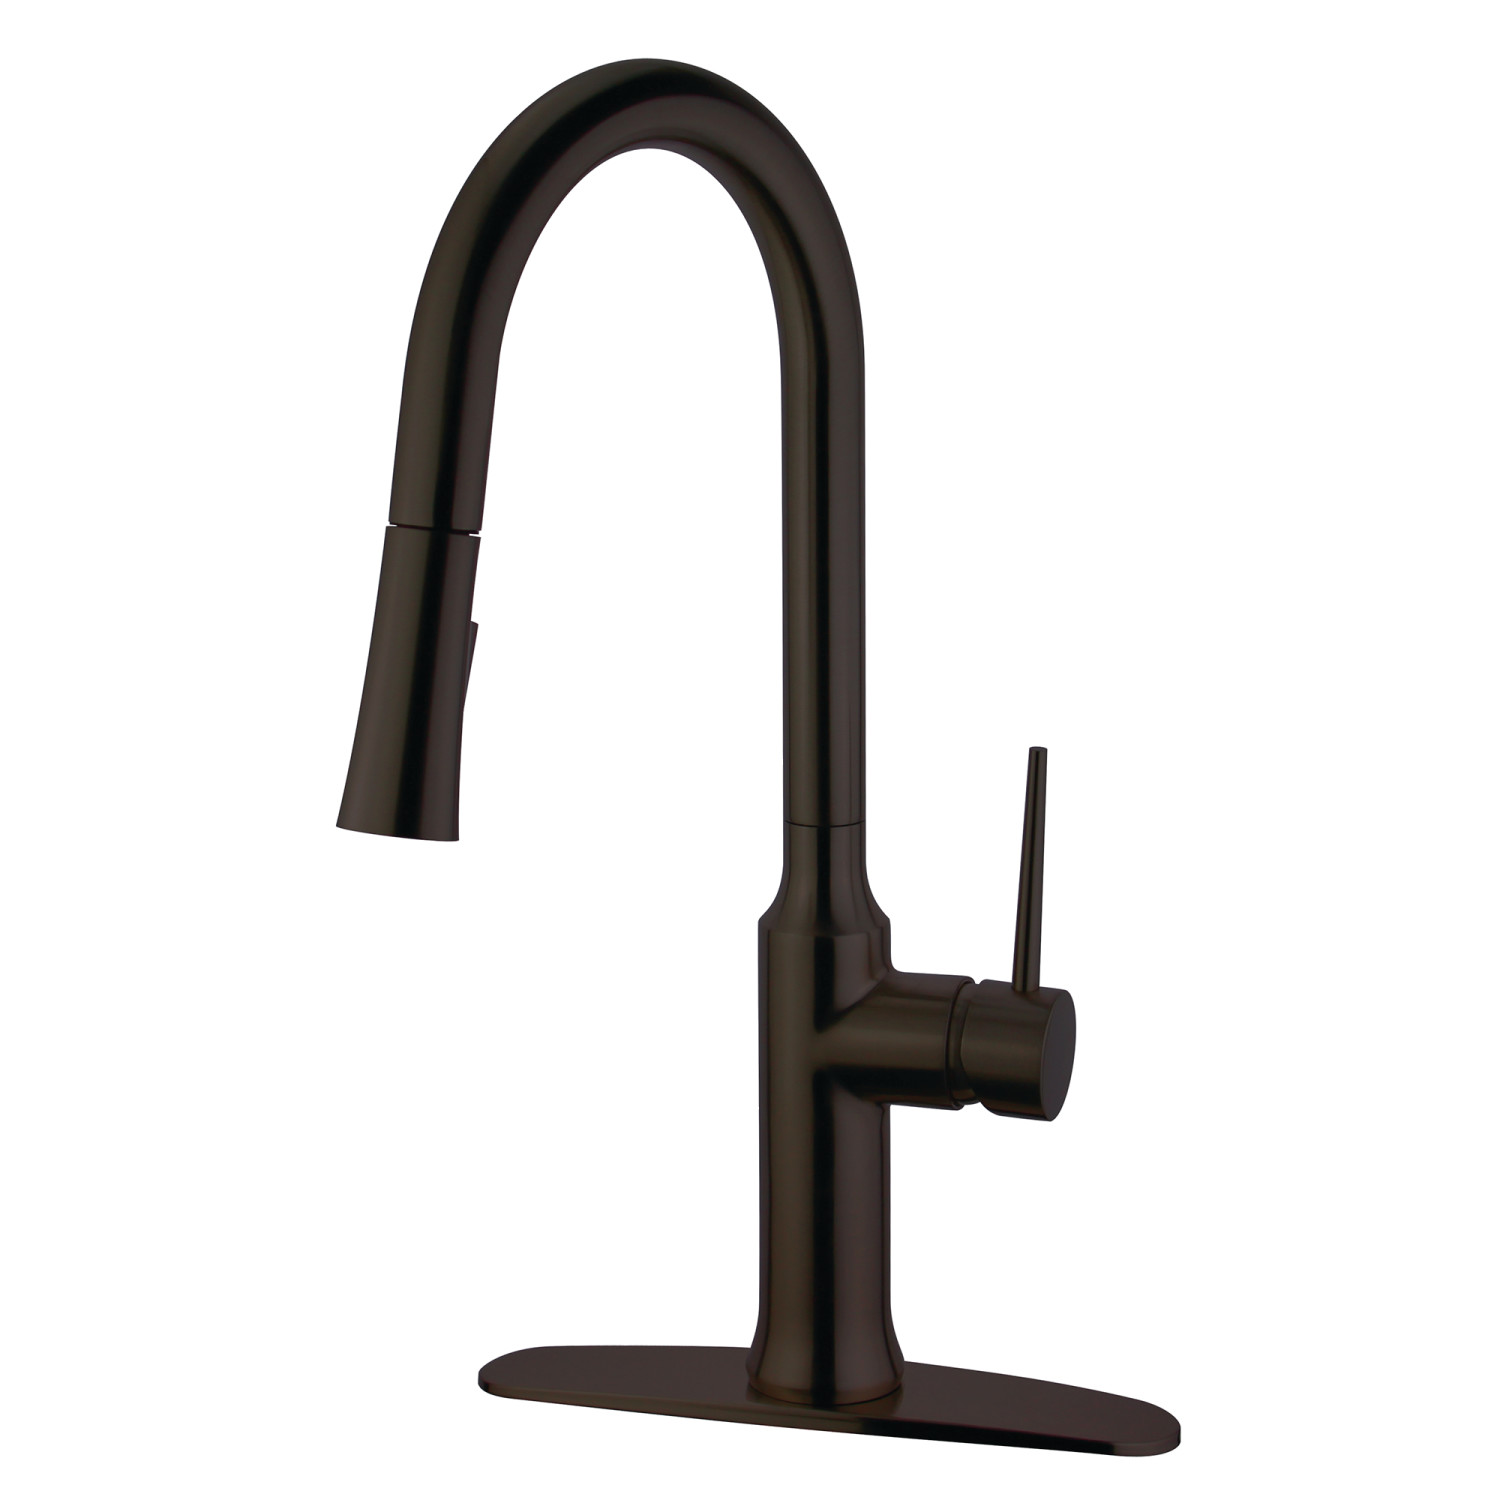 Kingston Brass LS2725NYL Single-Handle Pull-Down Kitchen Faucet, Oil ...